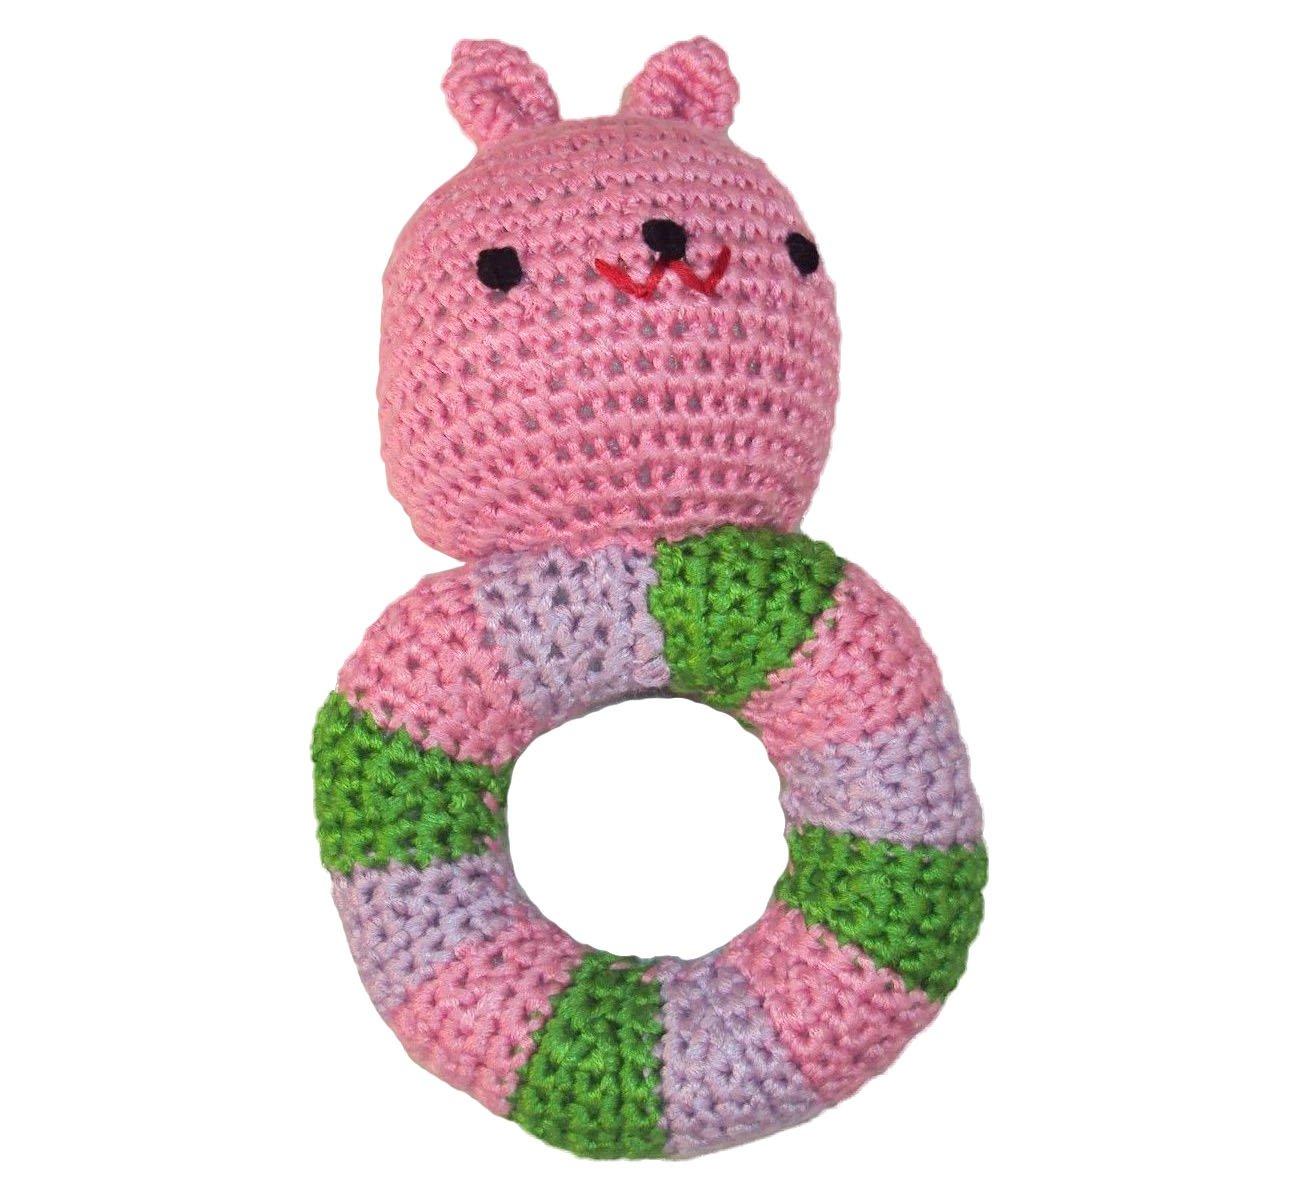 Bunny Baby Rattle Pink - Hand Crocheted, Made of Soft and Silky Yarn - KidStyle by Amikins by Amikins   B00XU03DGA